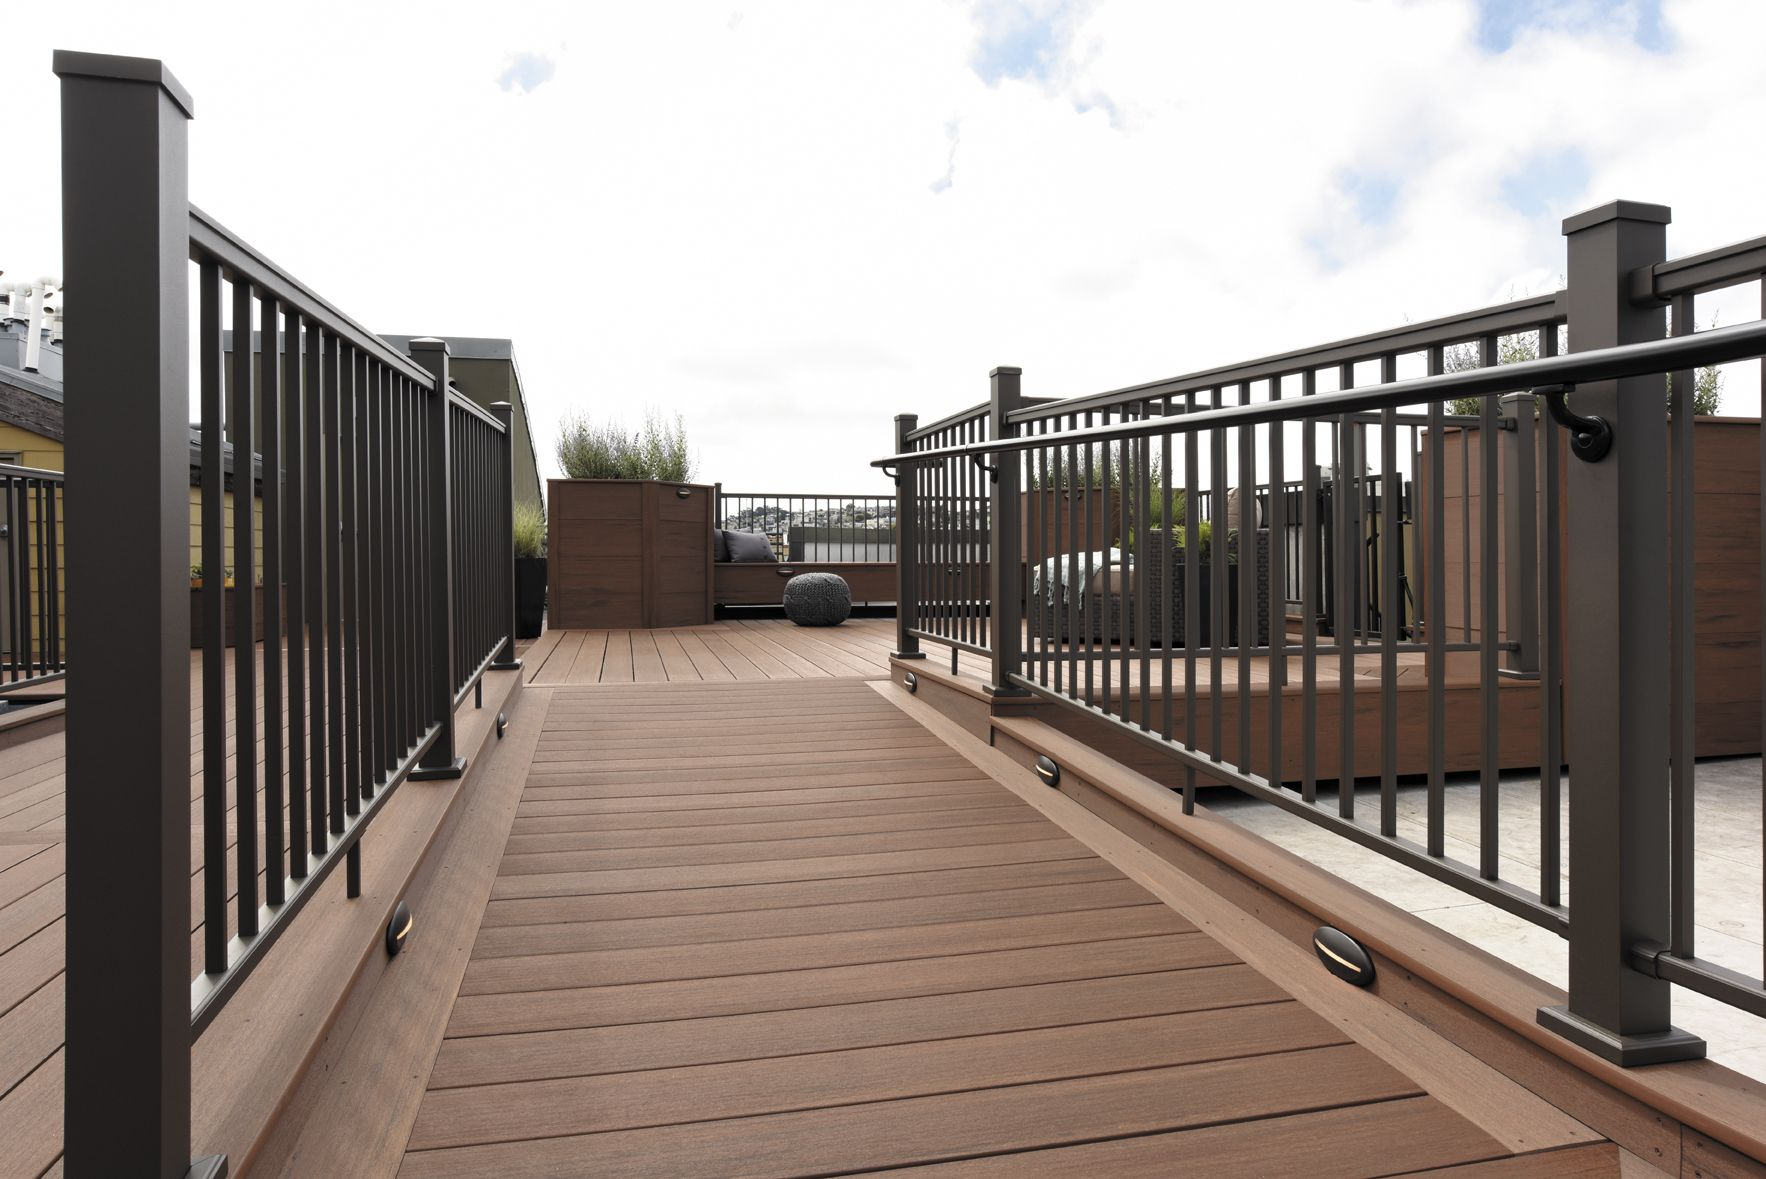 Best Rated Wpc Floors Composite Decking Material Suppliers In Nairobi Laying Wooden Flooring How To Organise The Staggering In 2019 Building A Deck Decking Material Composite Decking